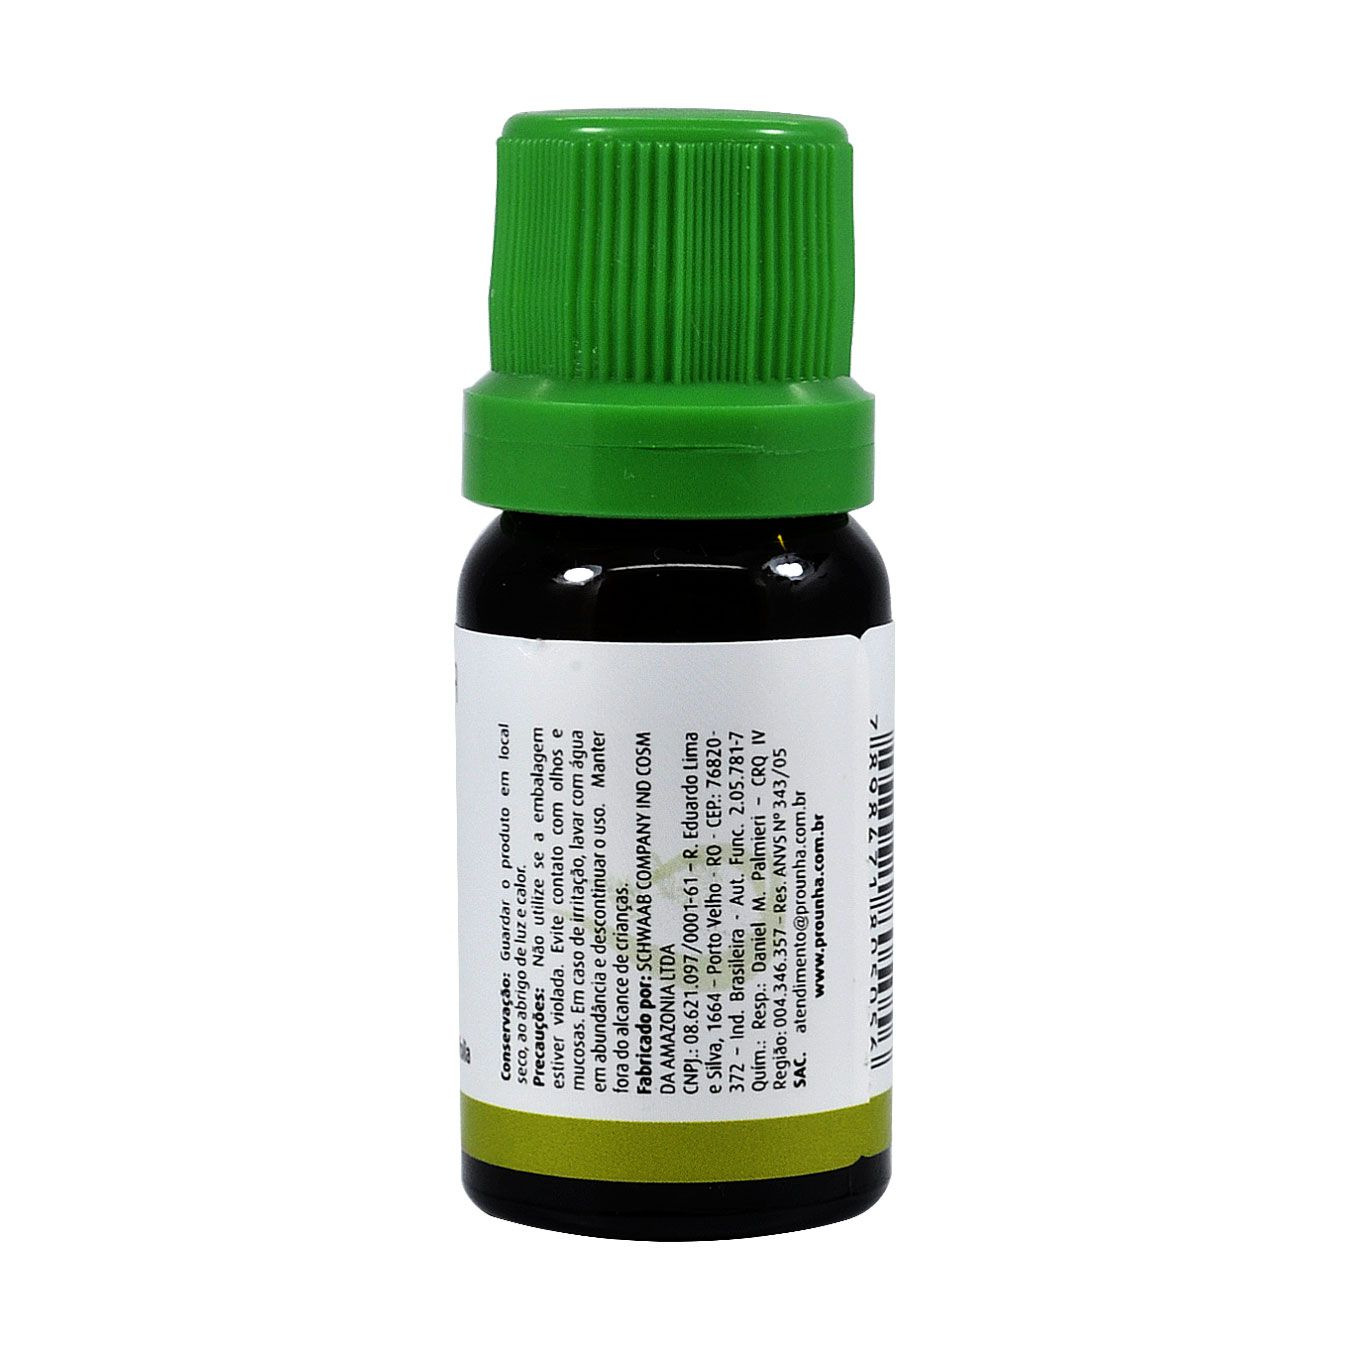 Óleo Essencial de Melaleuca Alternifolia 10ml